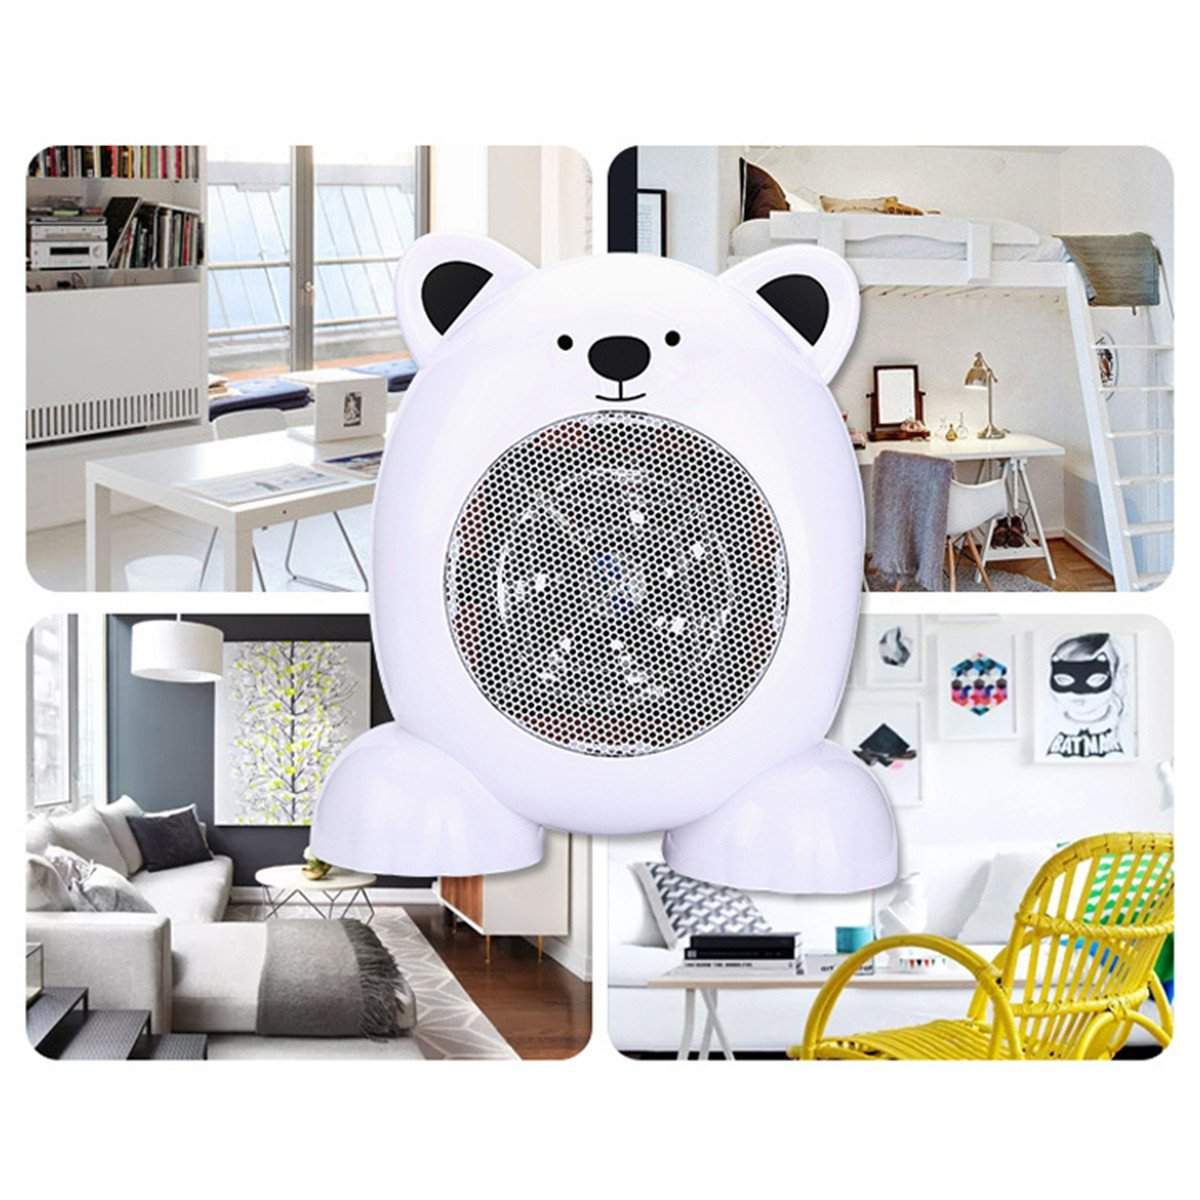 Small Heaters for Bedroom Beautiful 220v 360w Cartoon Bear Style Heater Fan Portable Mini Silencer Electric Heater Fan